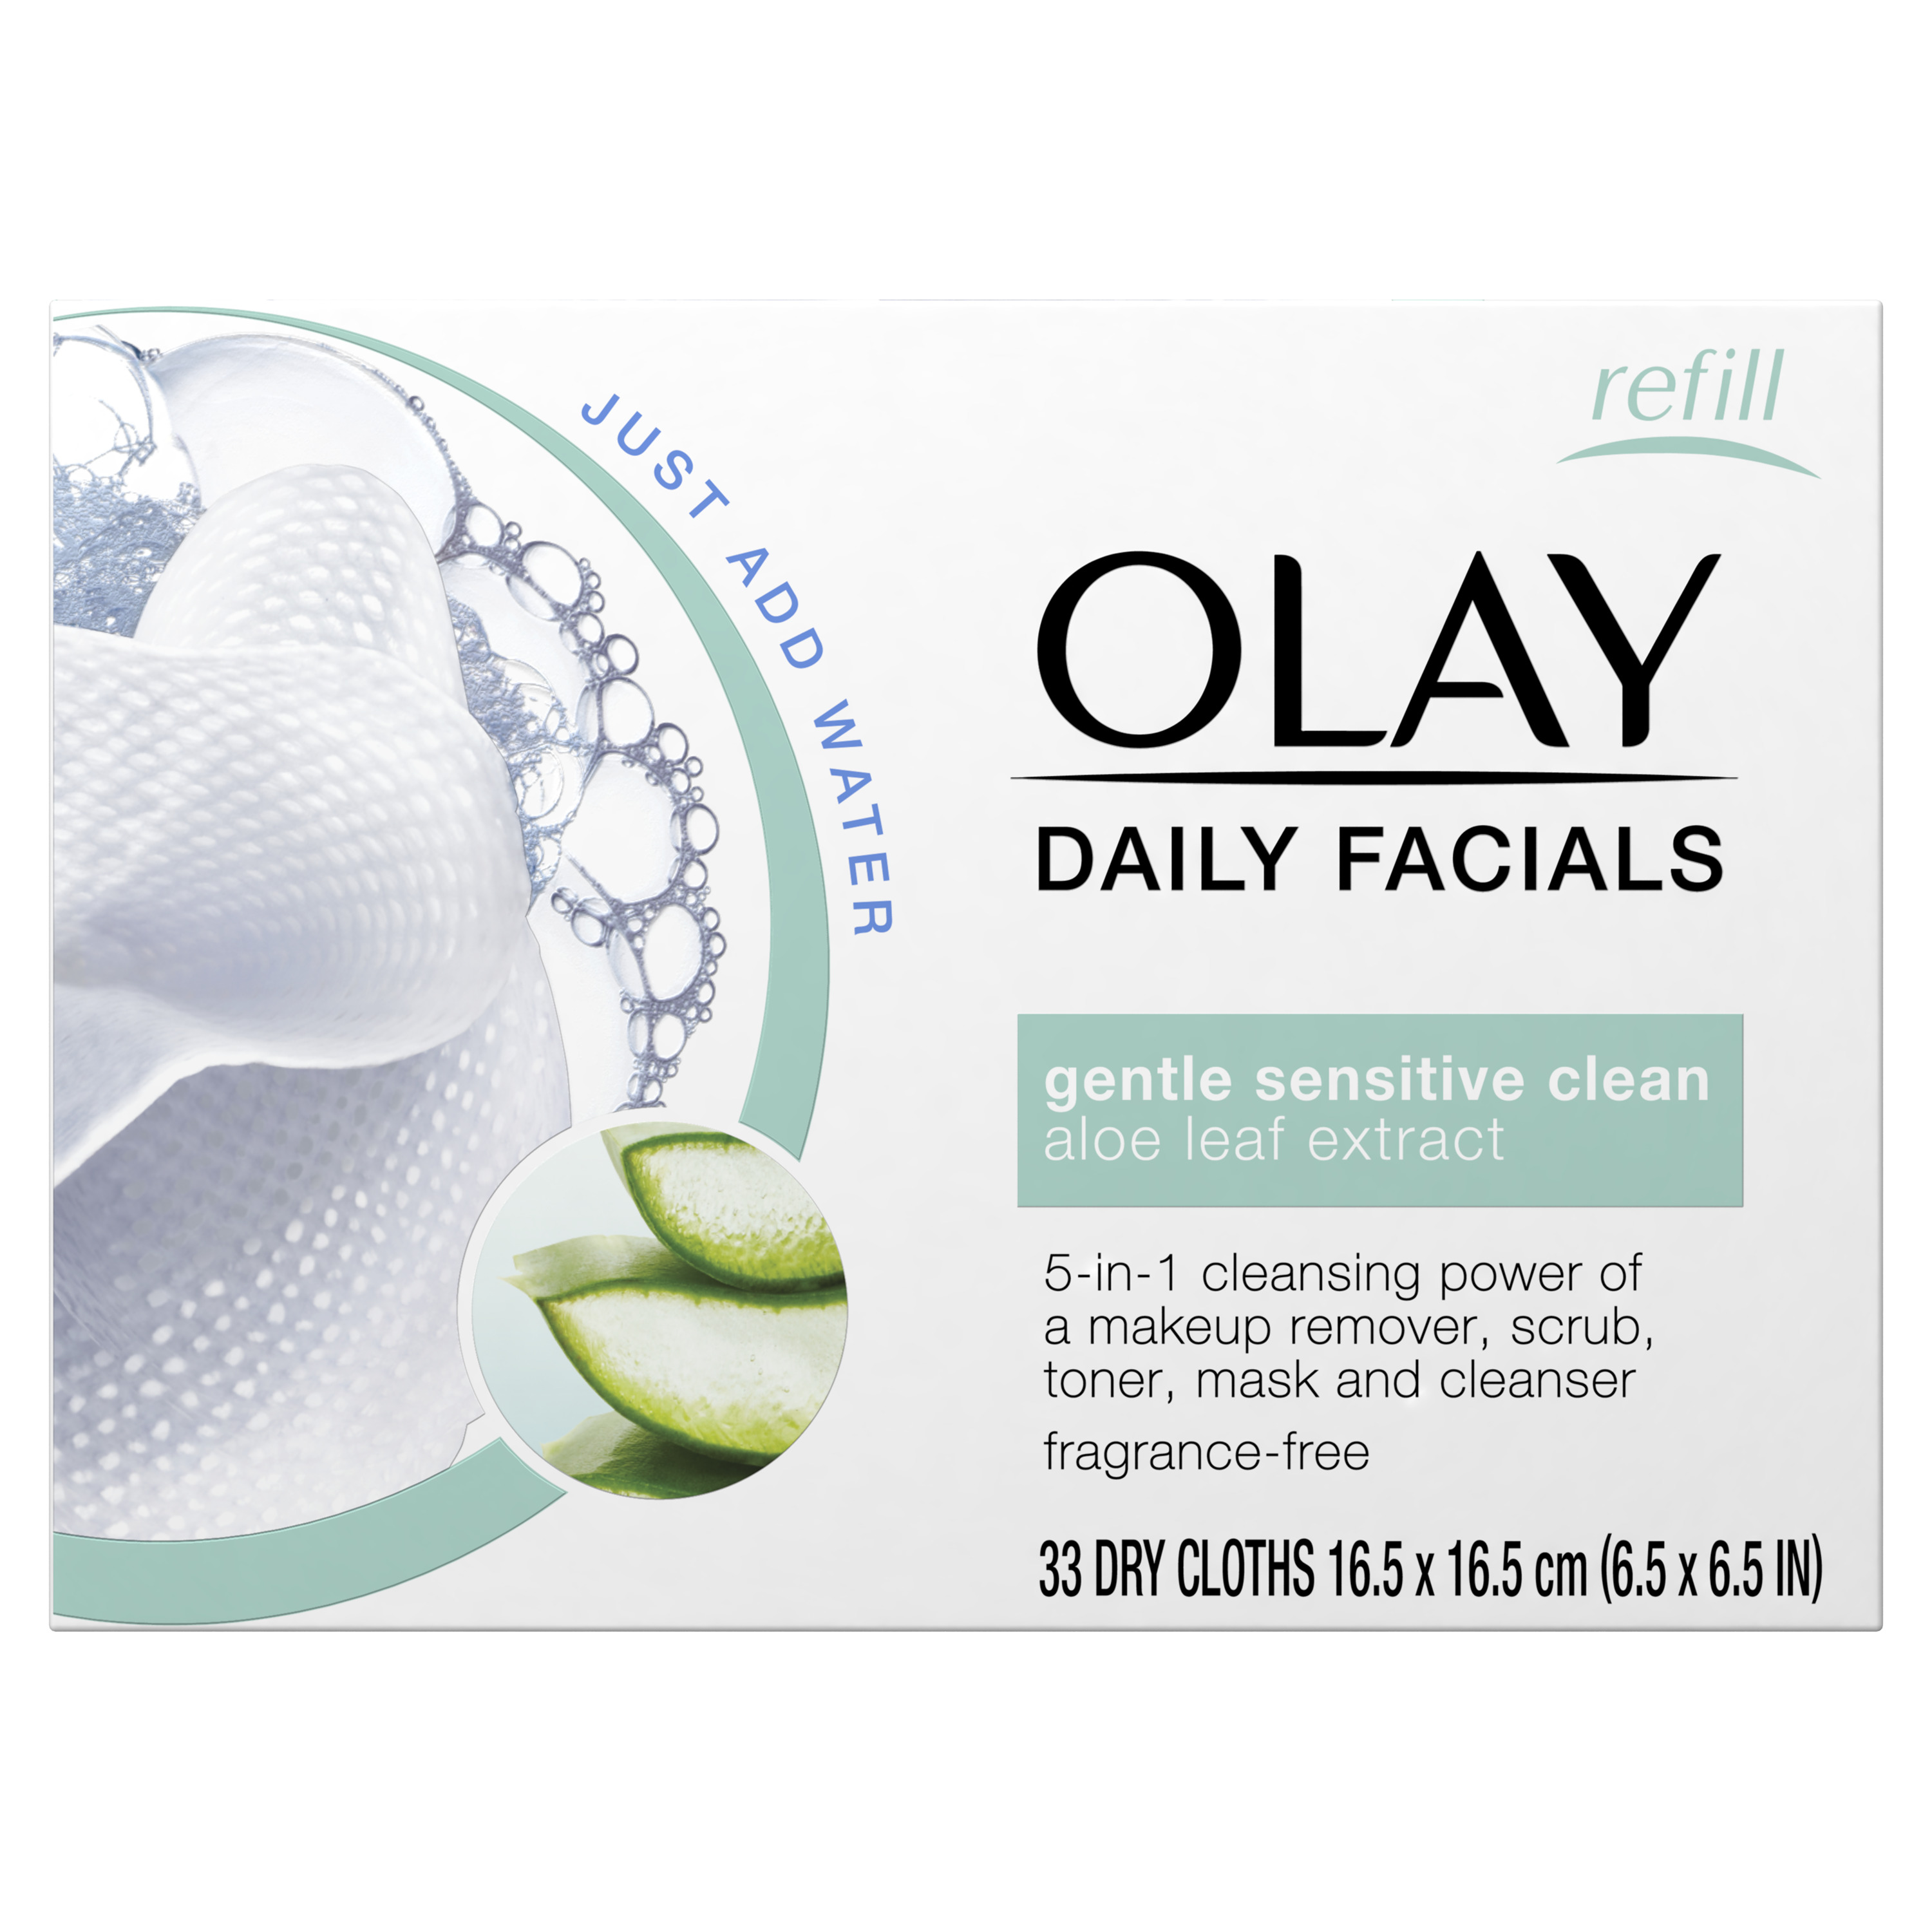 Olay Daily Facial Sensitive Cleansing Cloths w/ Aloe Extract, Makeup Remover, 33 Count